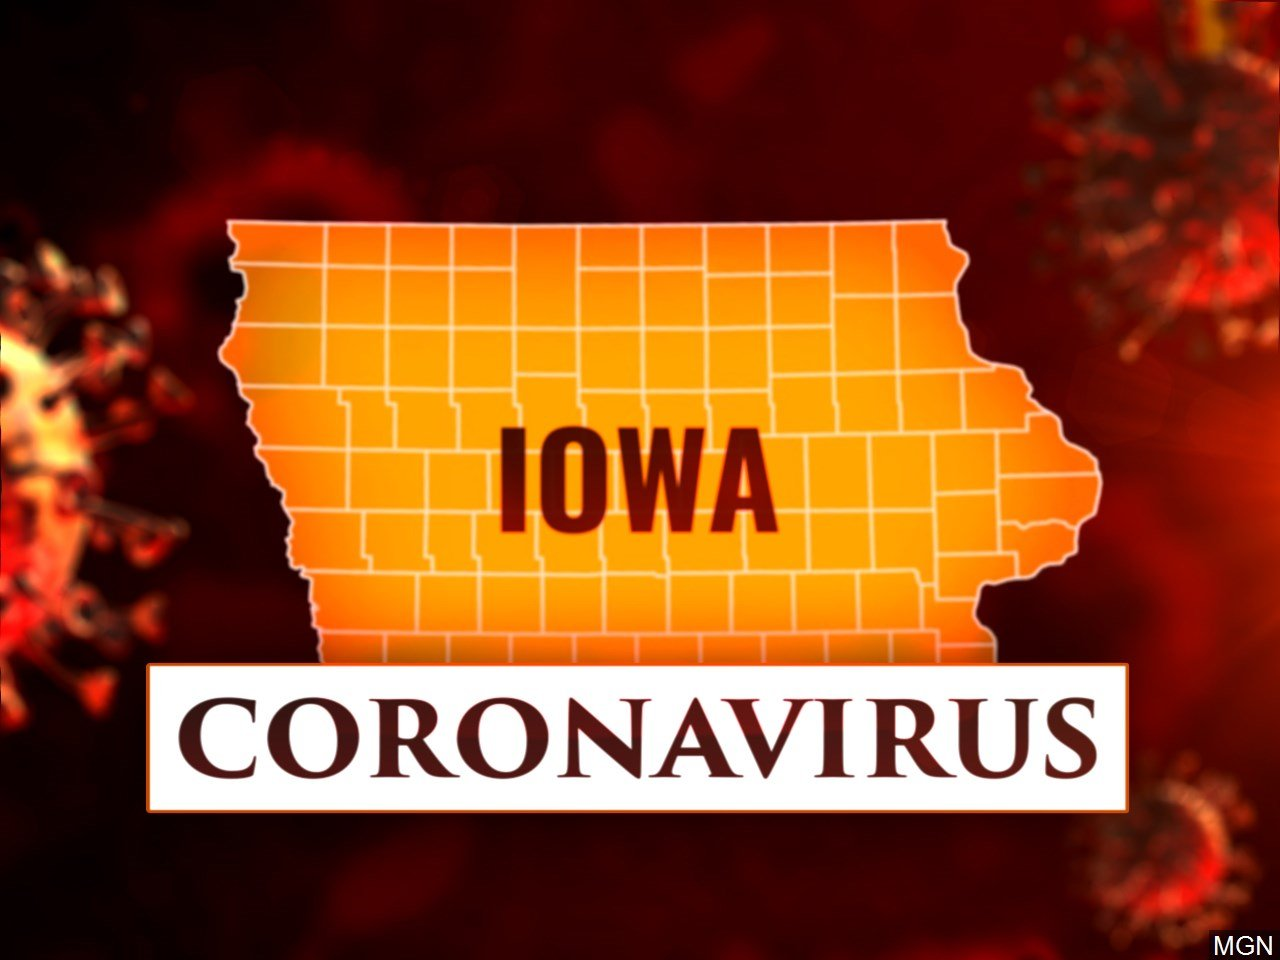 21 More COVID-19 Deaths, 595 New Cases Reported in Iowa 4